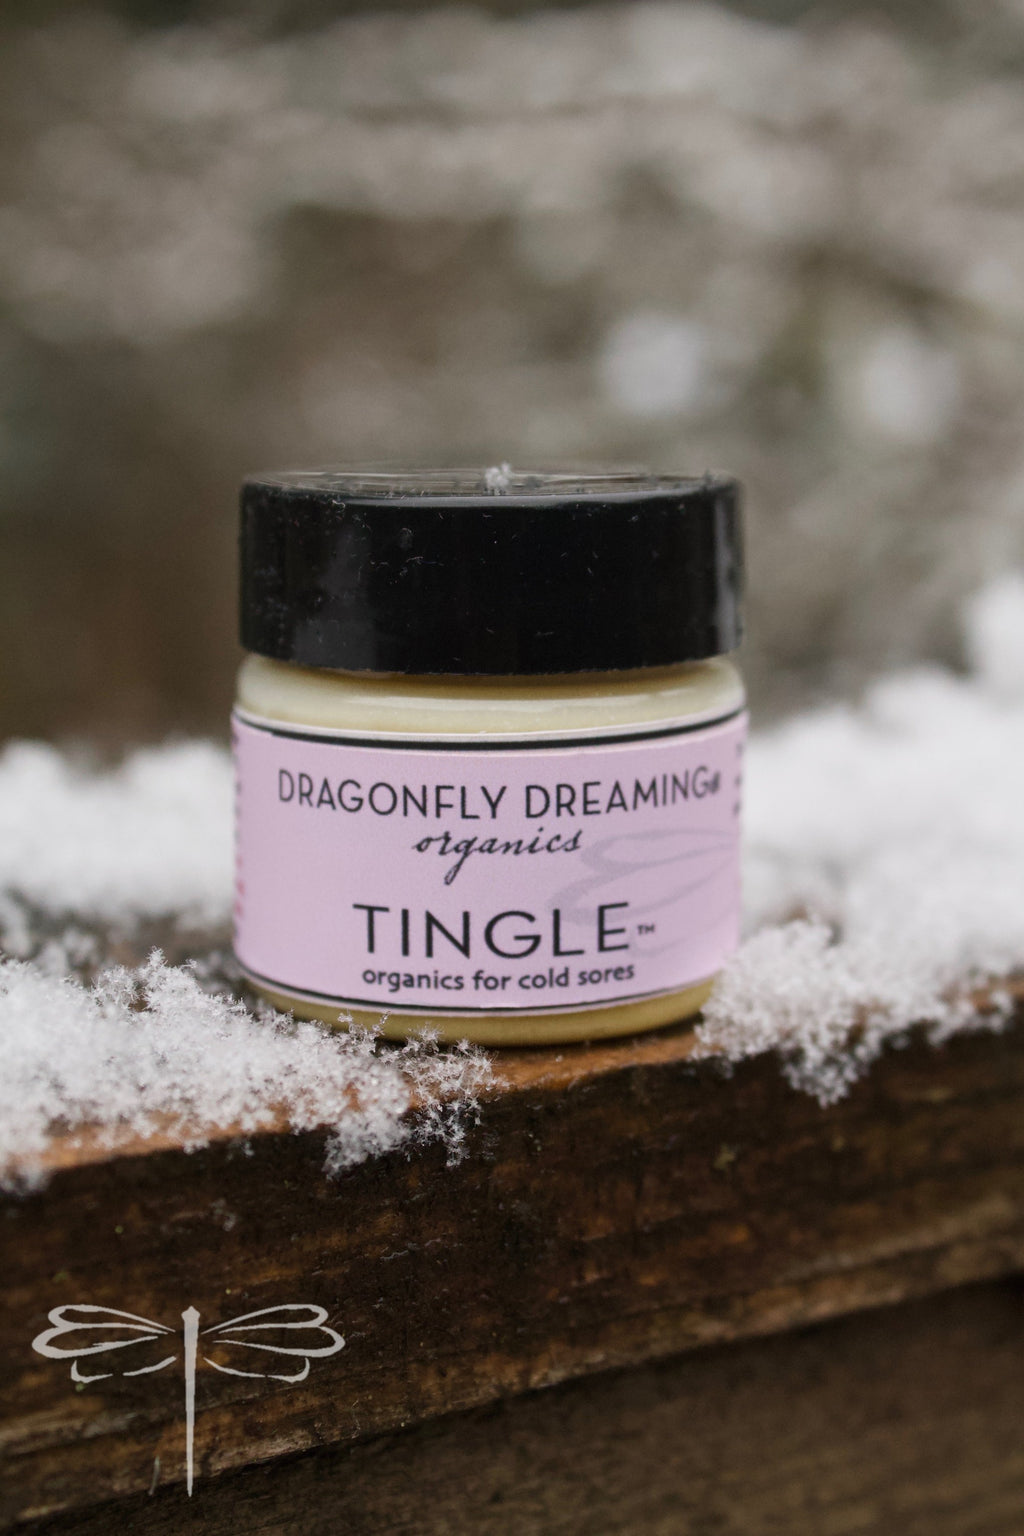 Dragonfly Dreaming® Tingle! Organics for Cold Sores™